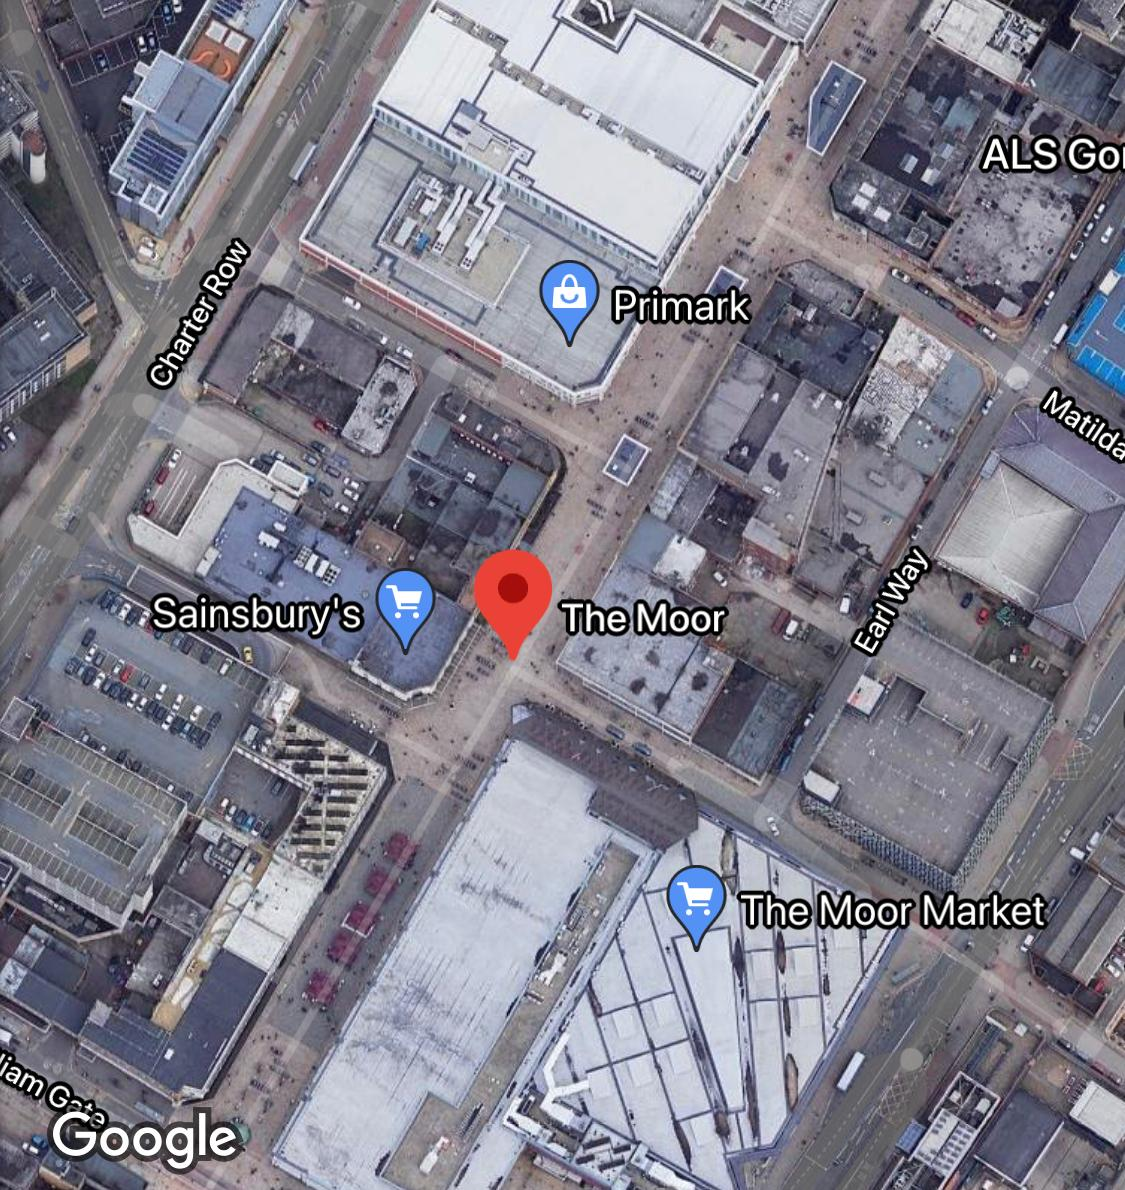 Location of The Moor in Sheffield, marked by a red dot